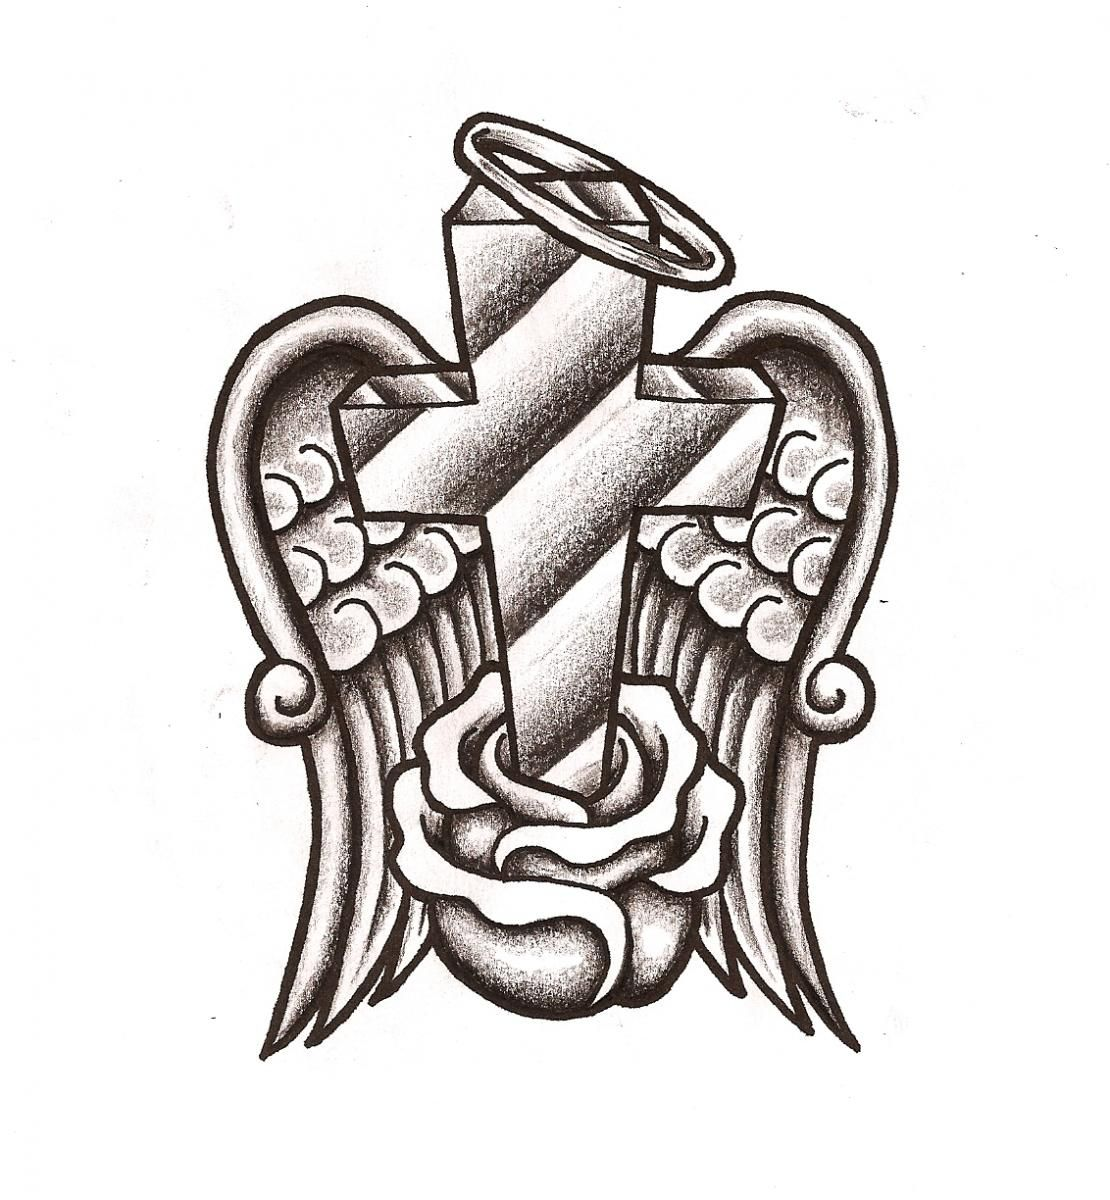 Coloring Pages Of Crosses With Flowers. Rose Flower And angel Winged Cross Tattoo Design  Bills Board